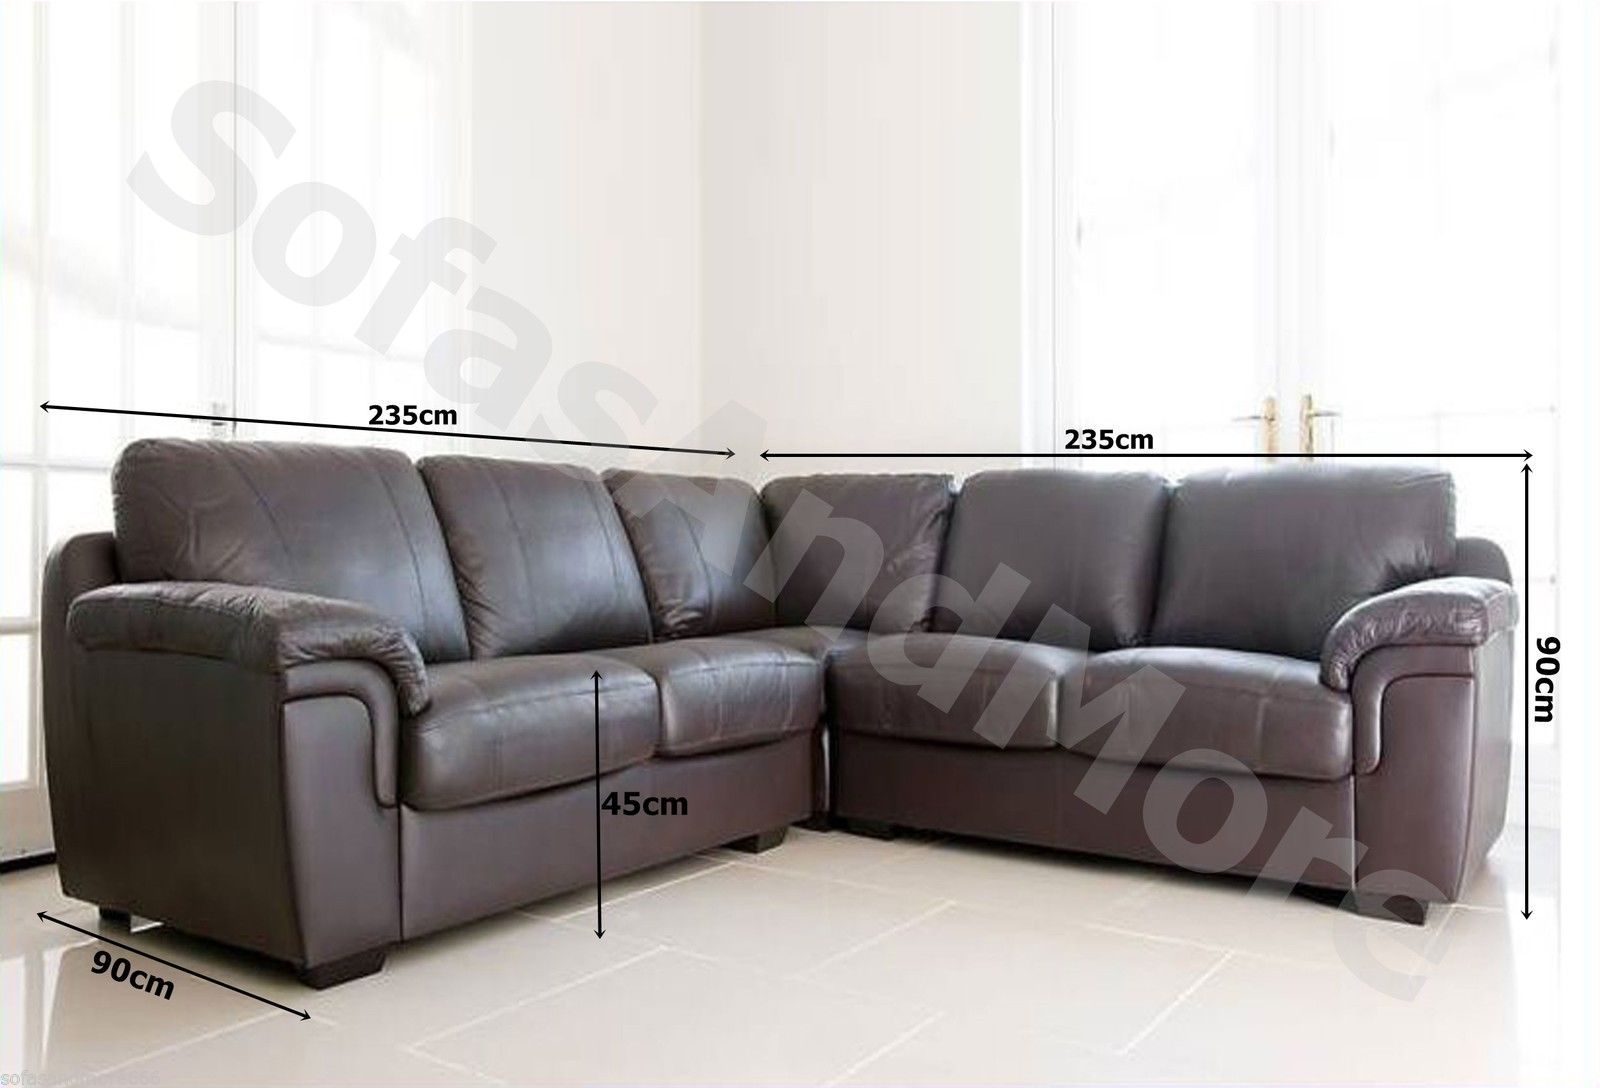 Sofa On Ebay Uk Pin By Sofas Andmore On Home Furniture Pinterest